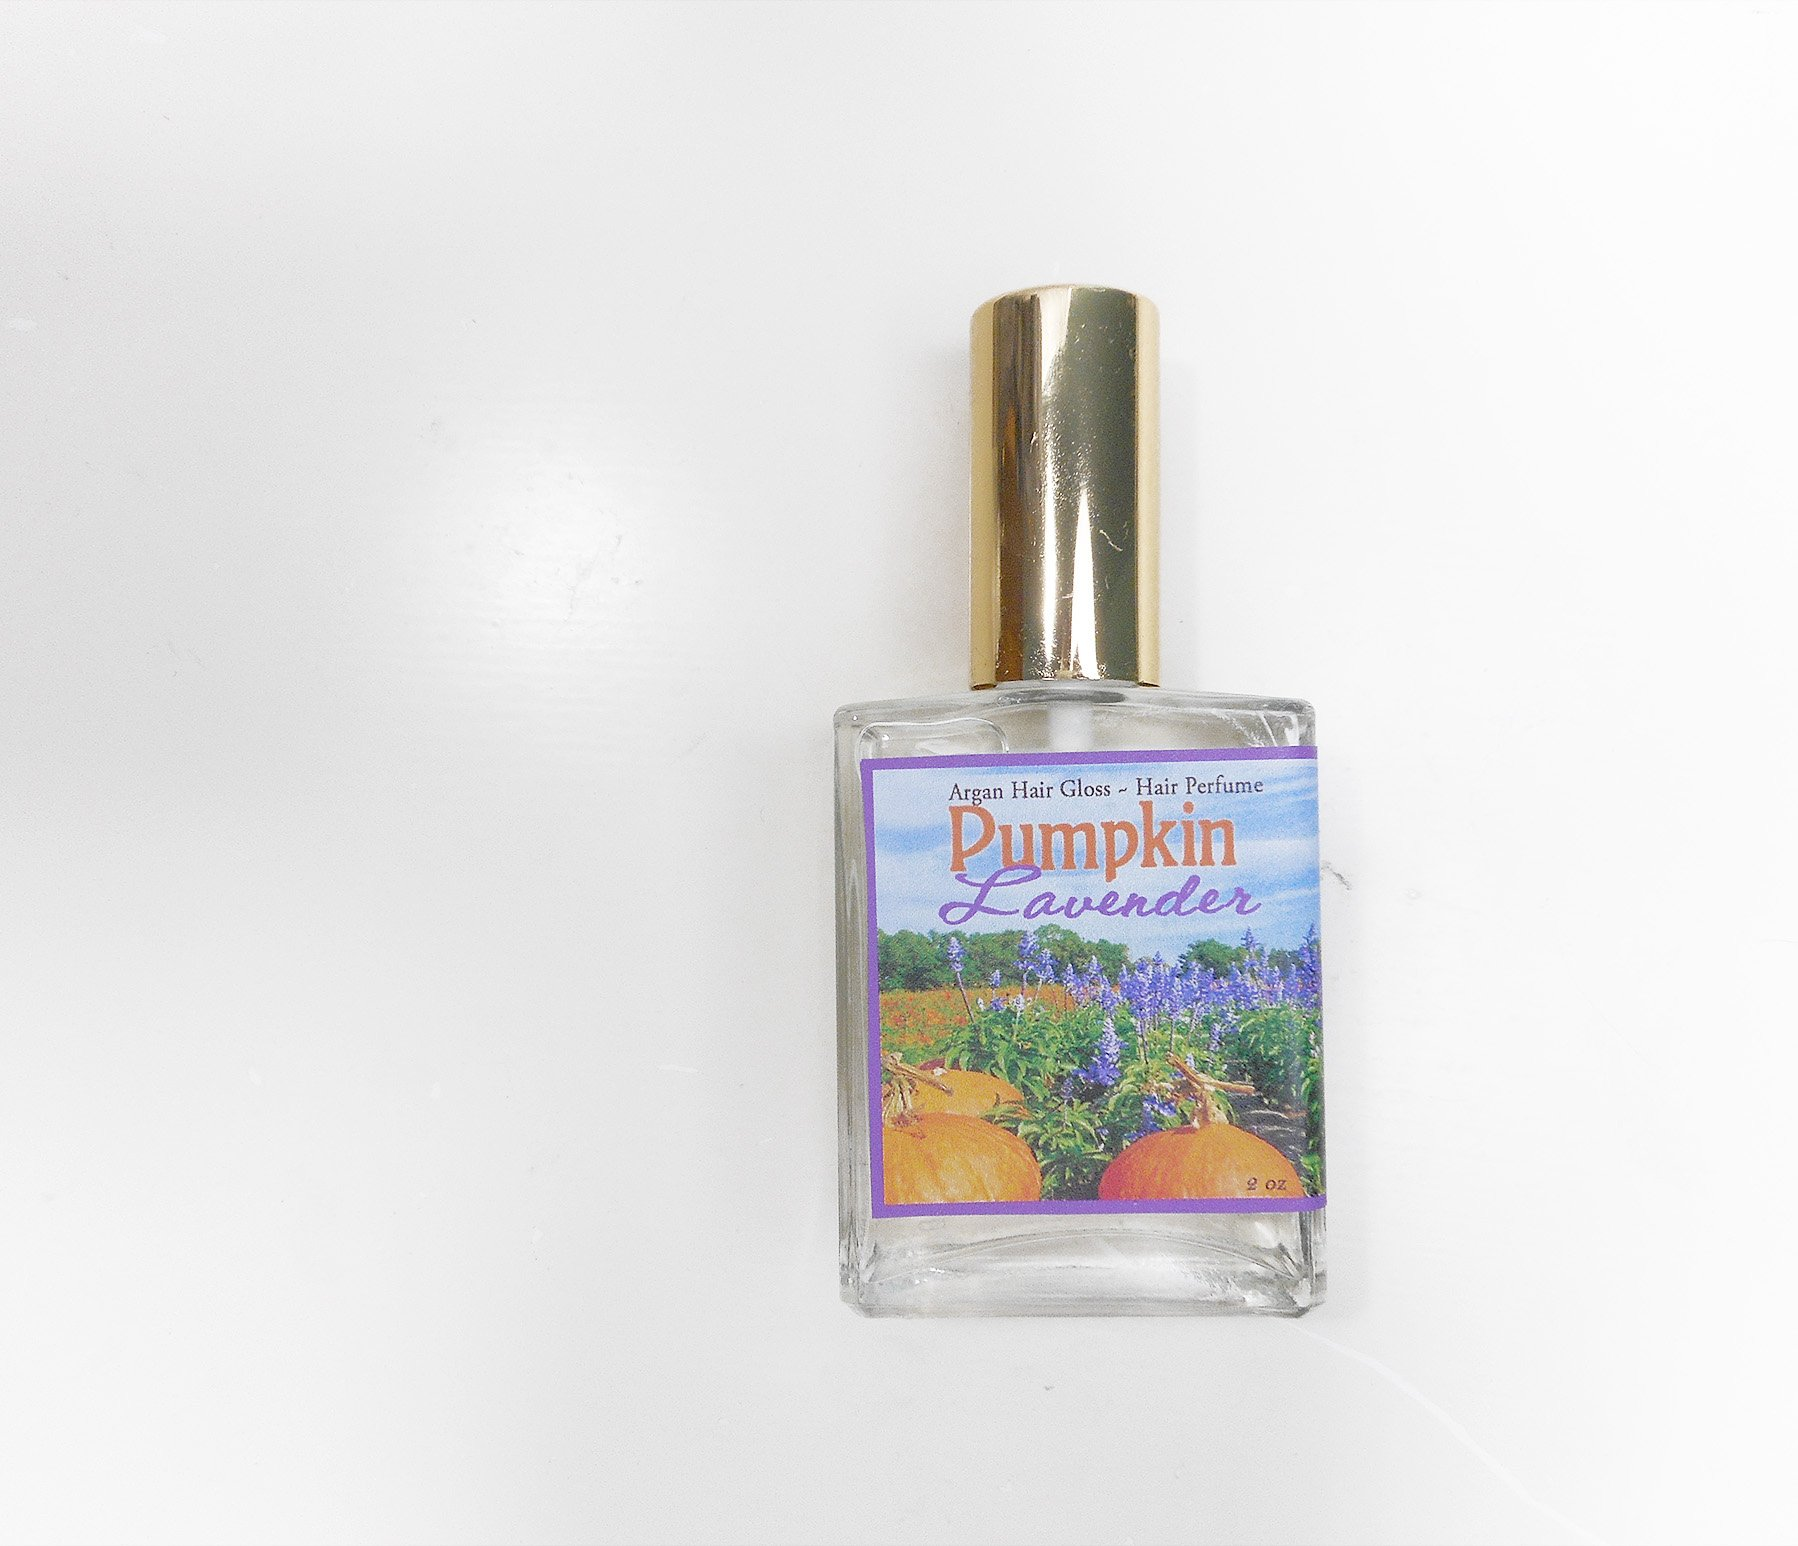 Pumpkin Lavender Hair Perfume - Hair Mist, Argan Hair Milk or Argan Hair Gloss Spray - with Silk Protein and Vitamin B - 2 oz Spray